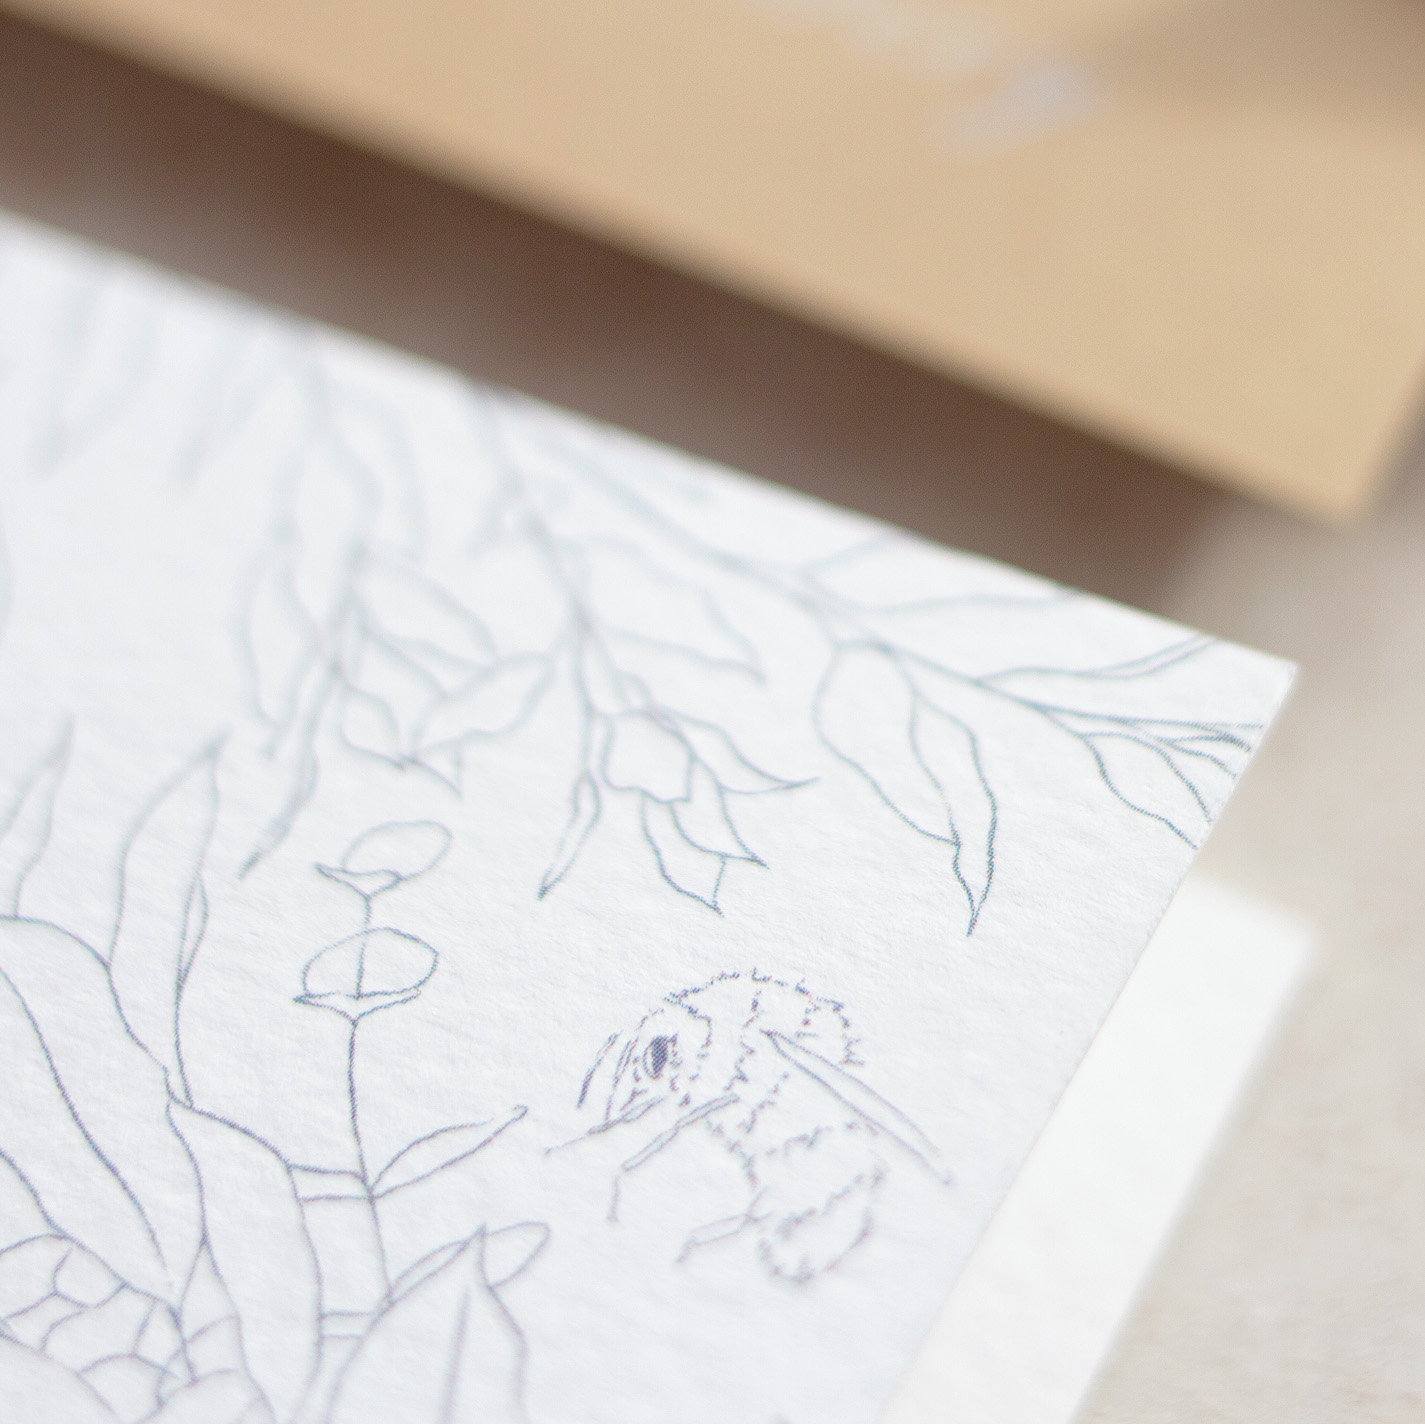 Bumble Bee Luxury Fine Art Wedding Stationery with Illustrated Botanical Elements - www.pinglepie.com.jpg